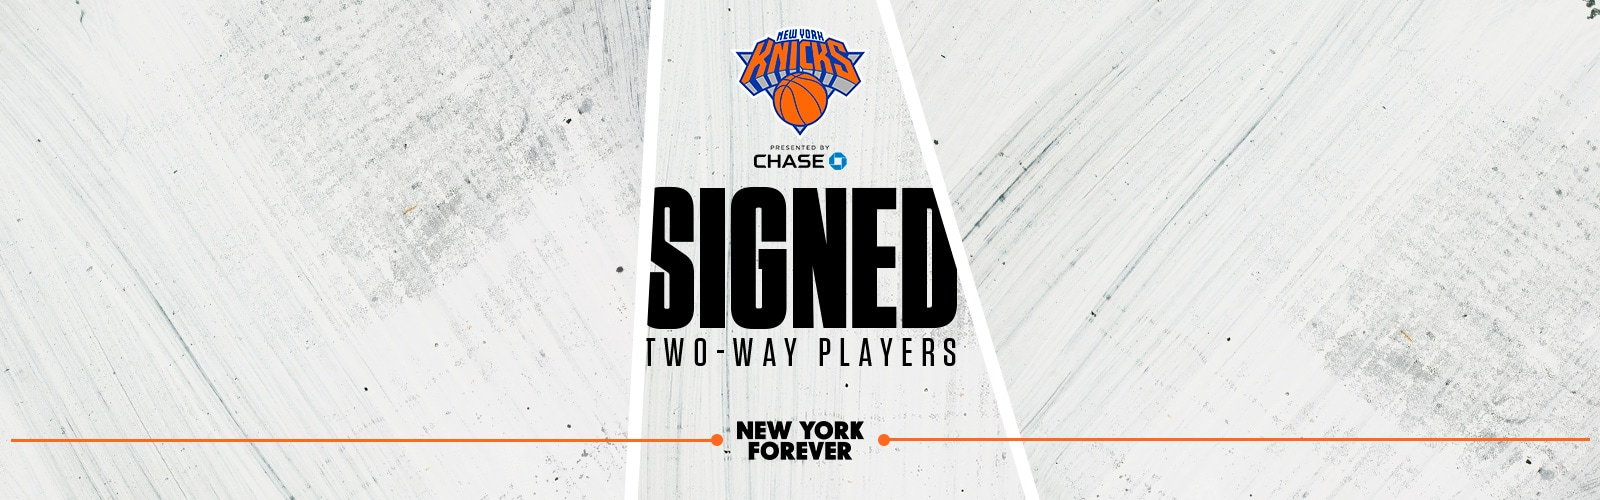 KNICKS SIGN ISAIAH HICKS AND ALLONZO TRIER TO TWO-WAY CONTRACTS